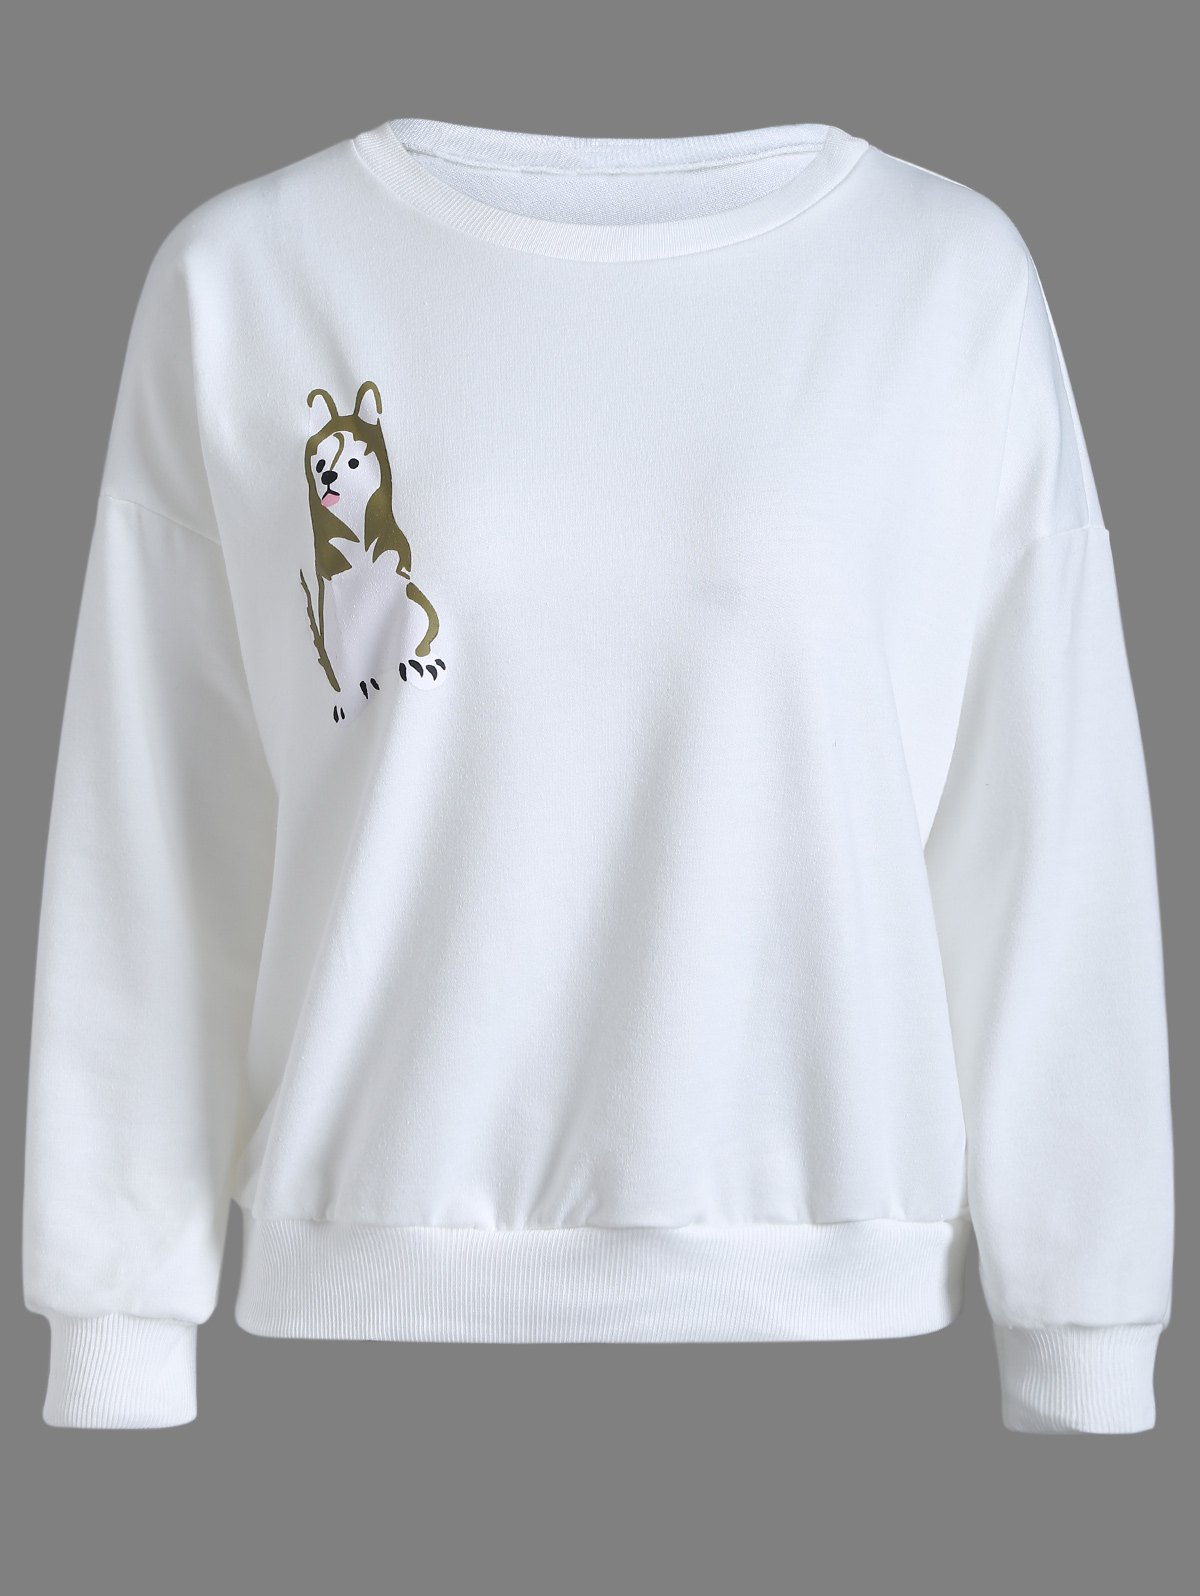 Animal Print Pullover Sweatshirt - WHITE M